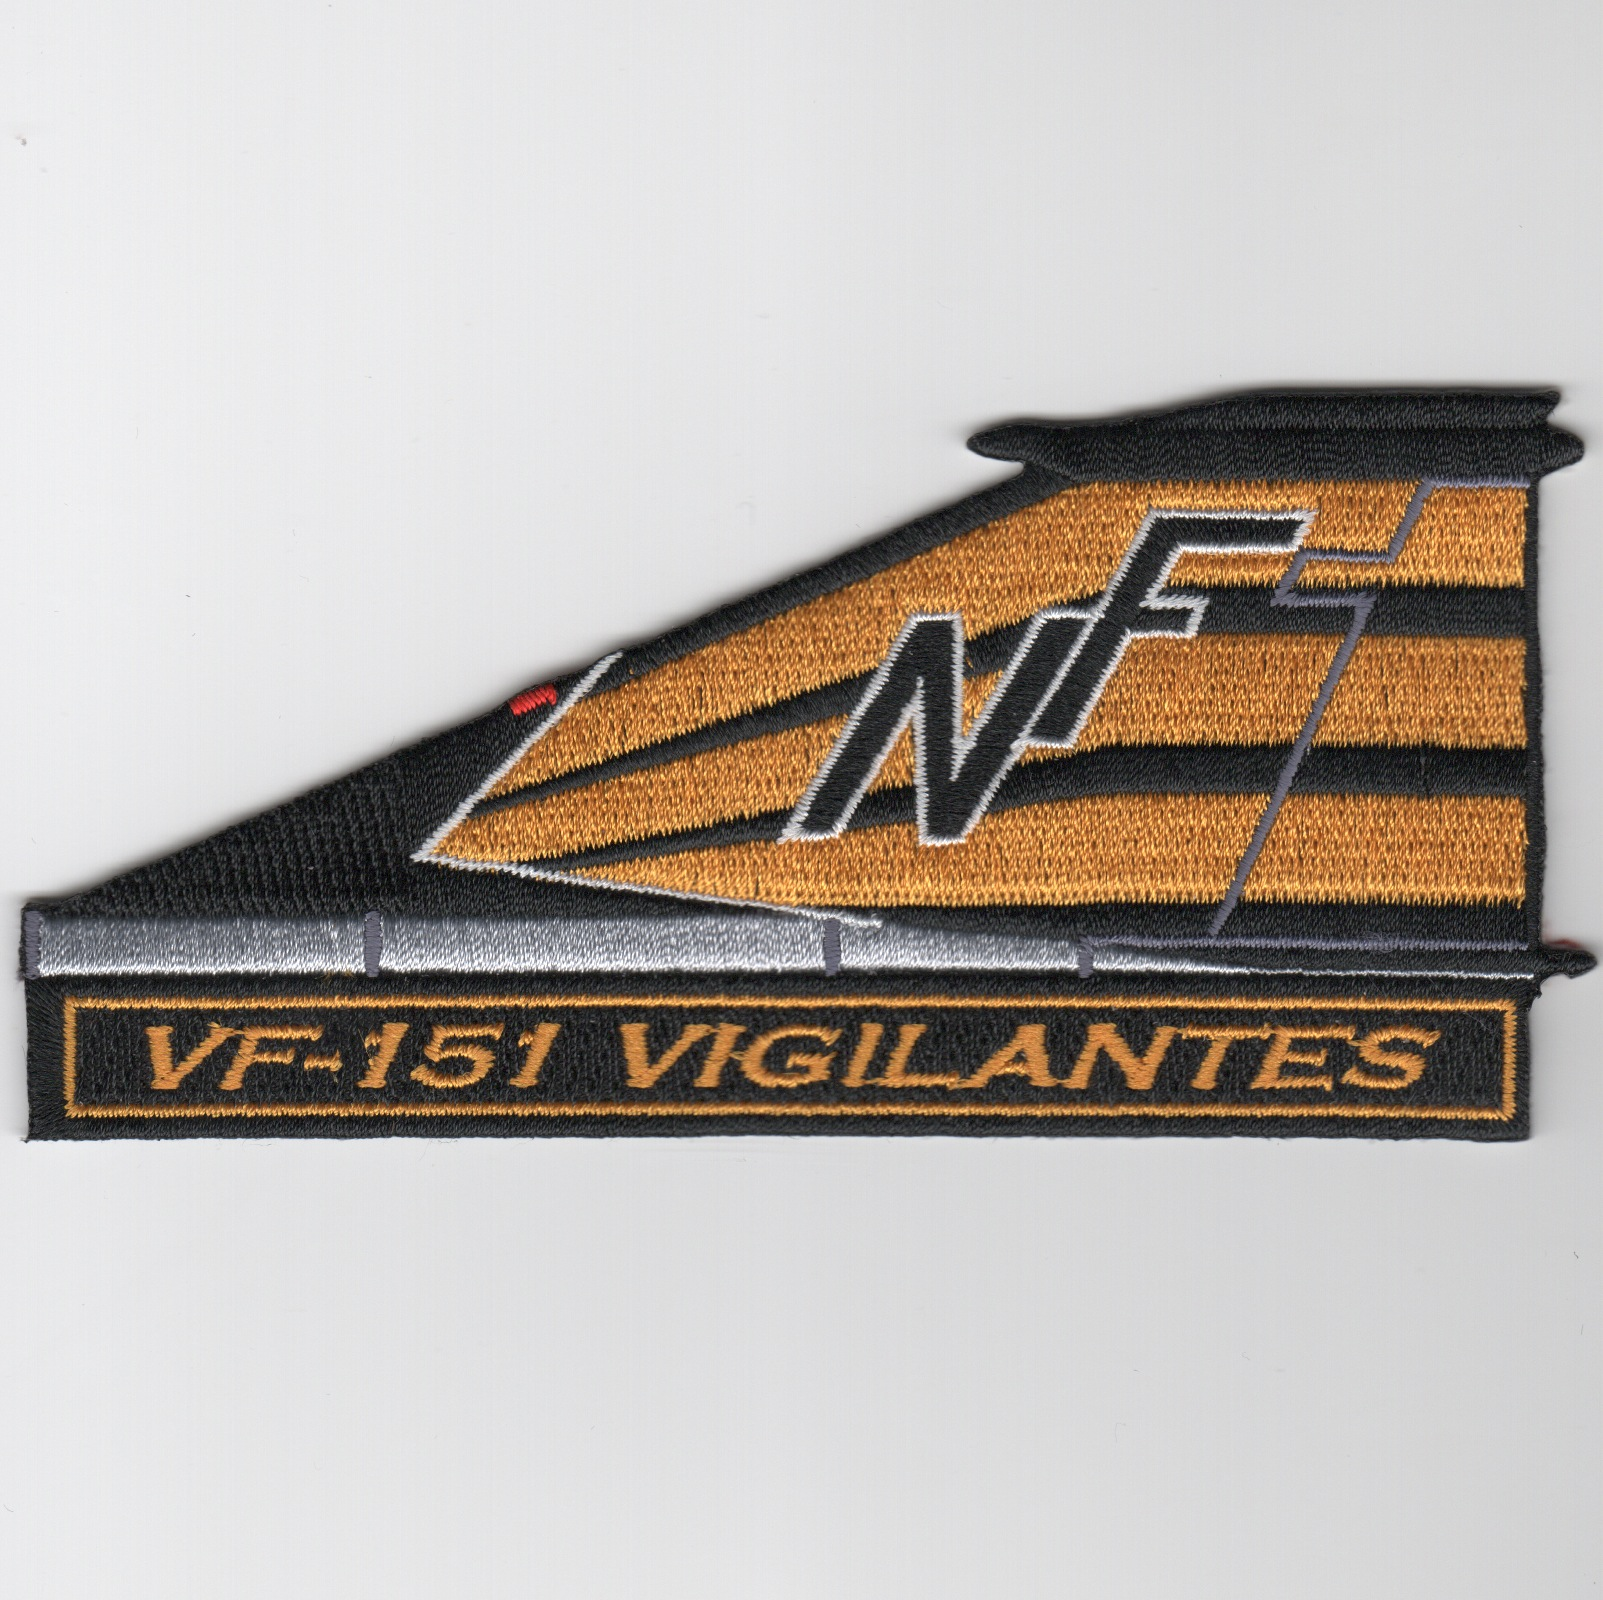 VF-151 F-4 TAILFIN Patch (Ylw/Blk)